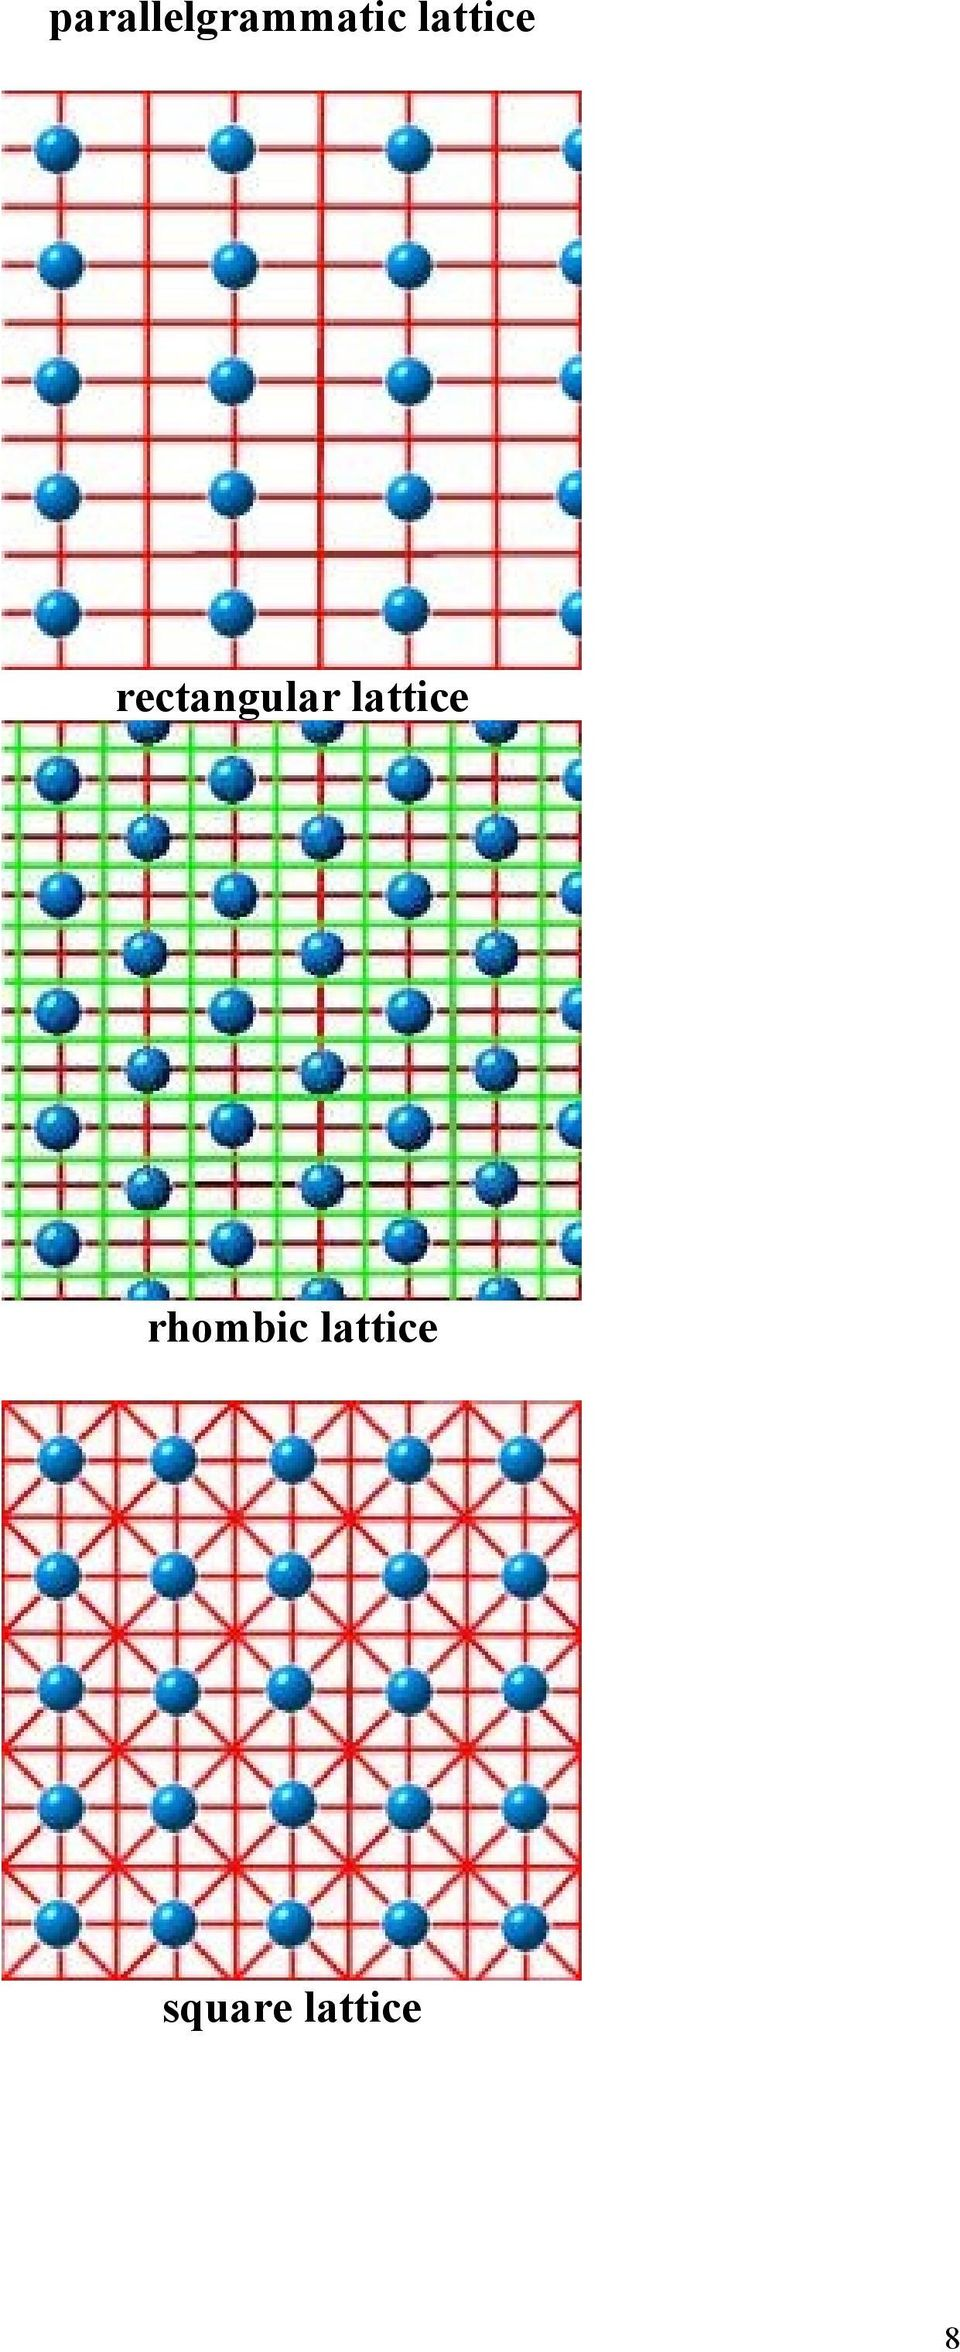 lattice rhombic